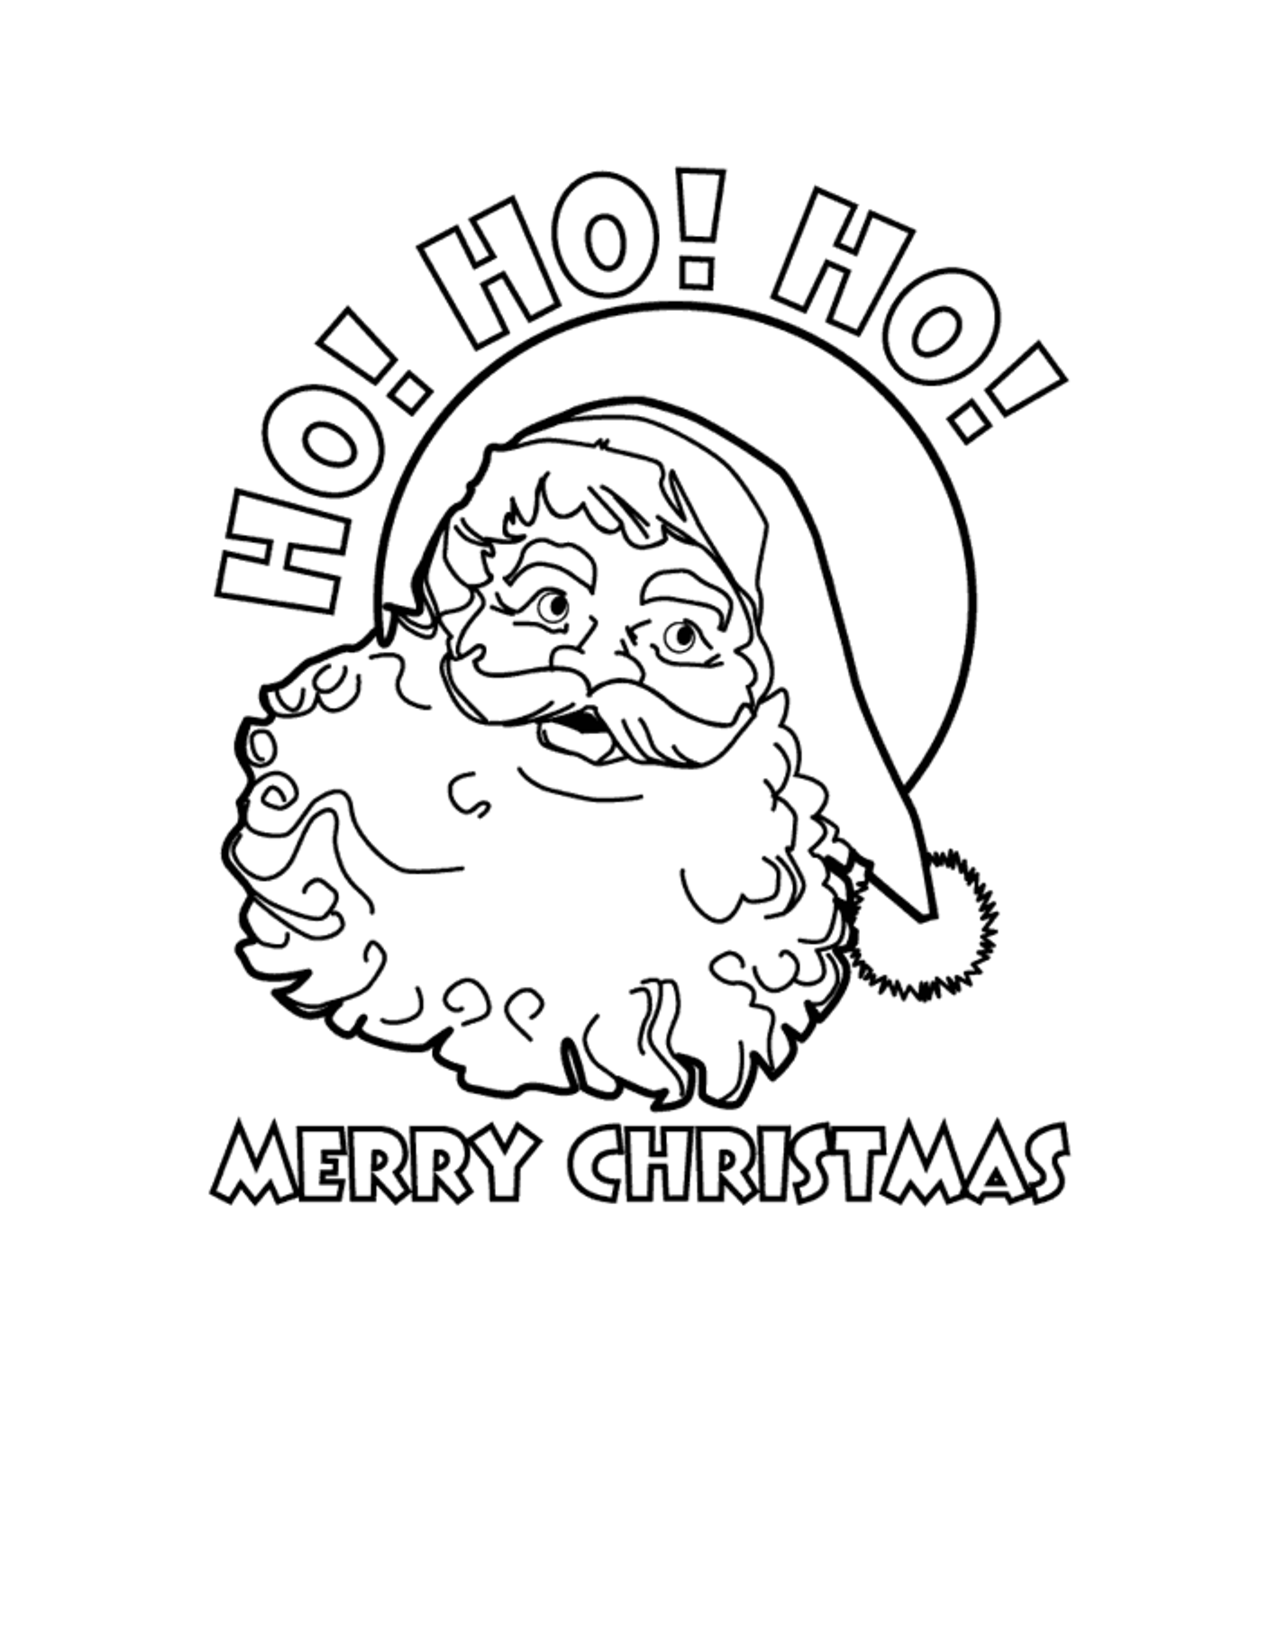 Ho Ho Ho Merry Christmas Santa Free Printable Coloring Sheet Free Printable Christmas Cards Printable Christmas Cards Christmas Cards Kids